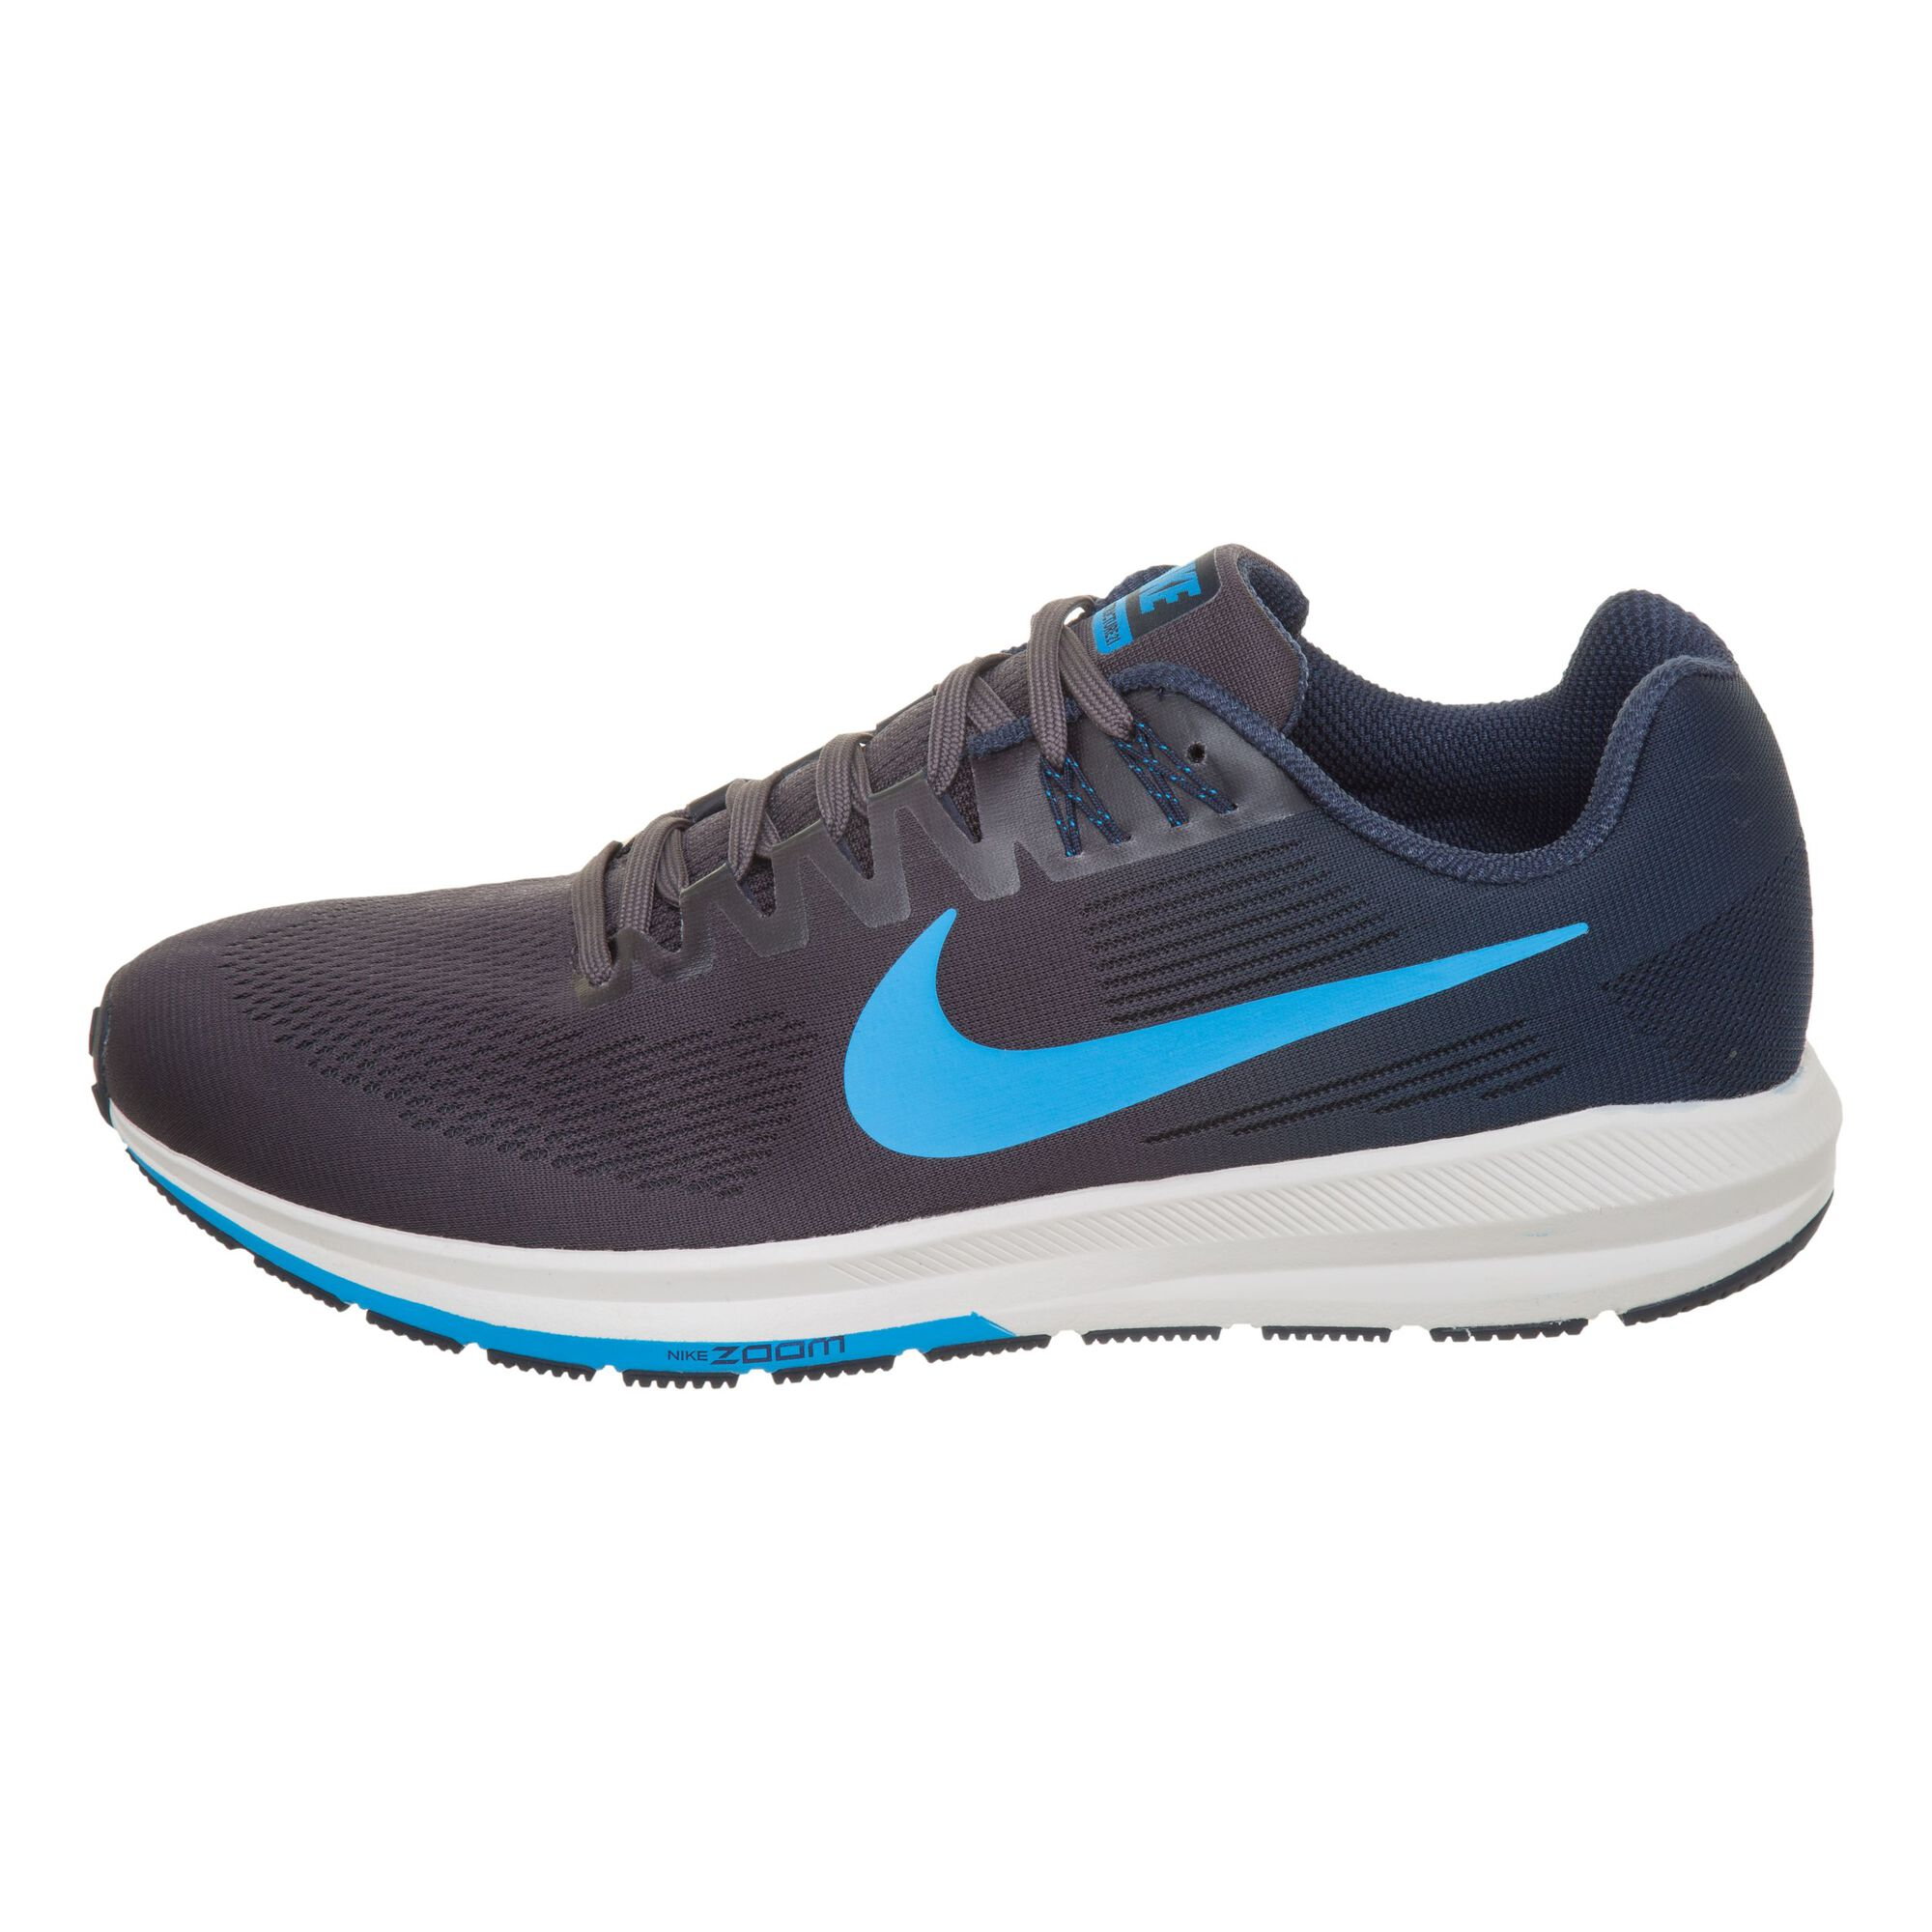 9cec3fafae918 Nike  Nike  Nike  Nike  Nike  Nike  Nike  Nike  Nike  Nike. Air Zoom  Structure 21 ...